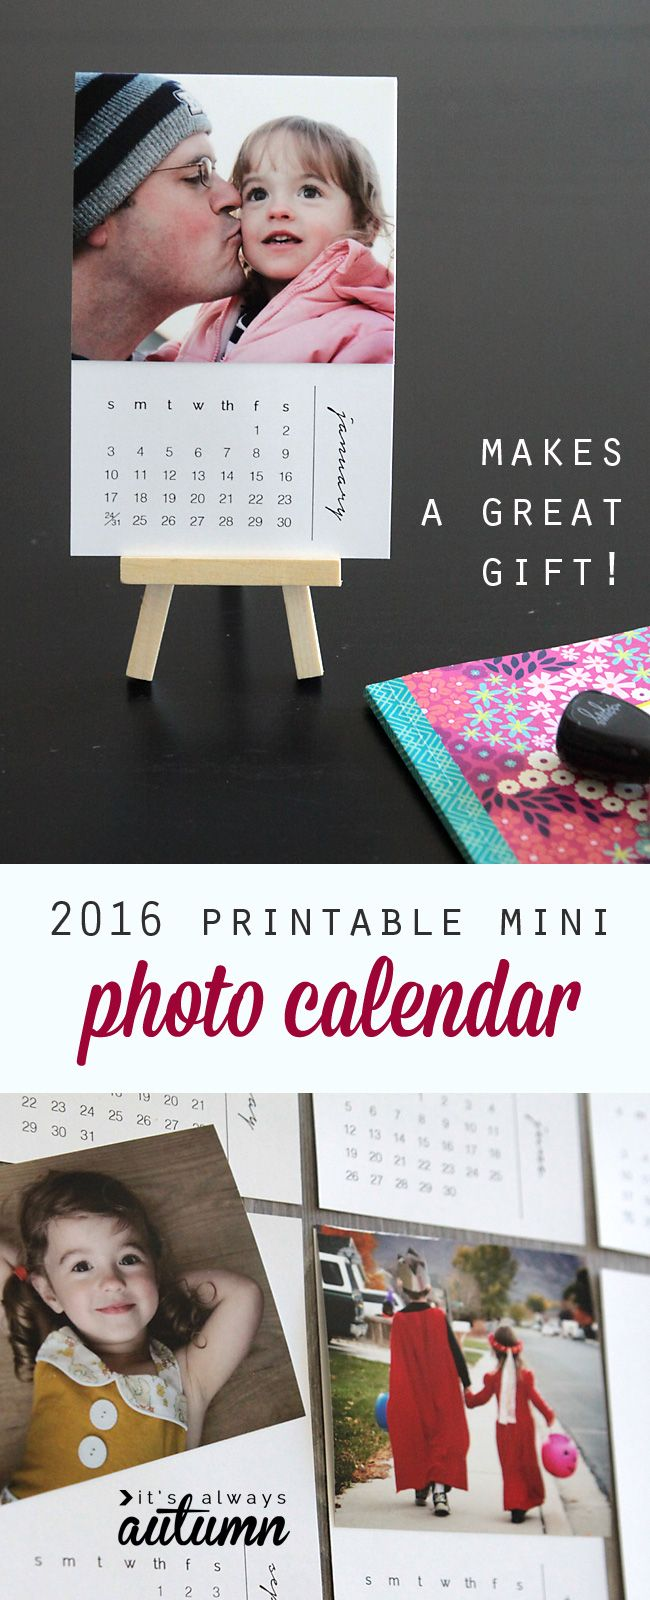 Free printable 2016 mini photo calendar - personalize it with your own photos for an easy, inexpensive handmade Christmas gift idea! Perfect for Dads or Grandparents. This would work as a mini desk calendar, or hang all 12 months for a pretty DIY wall calendar.: